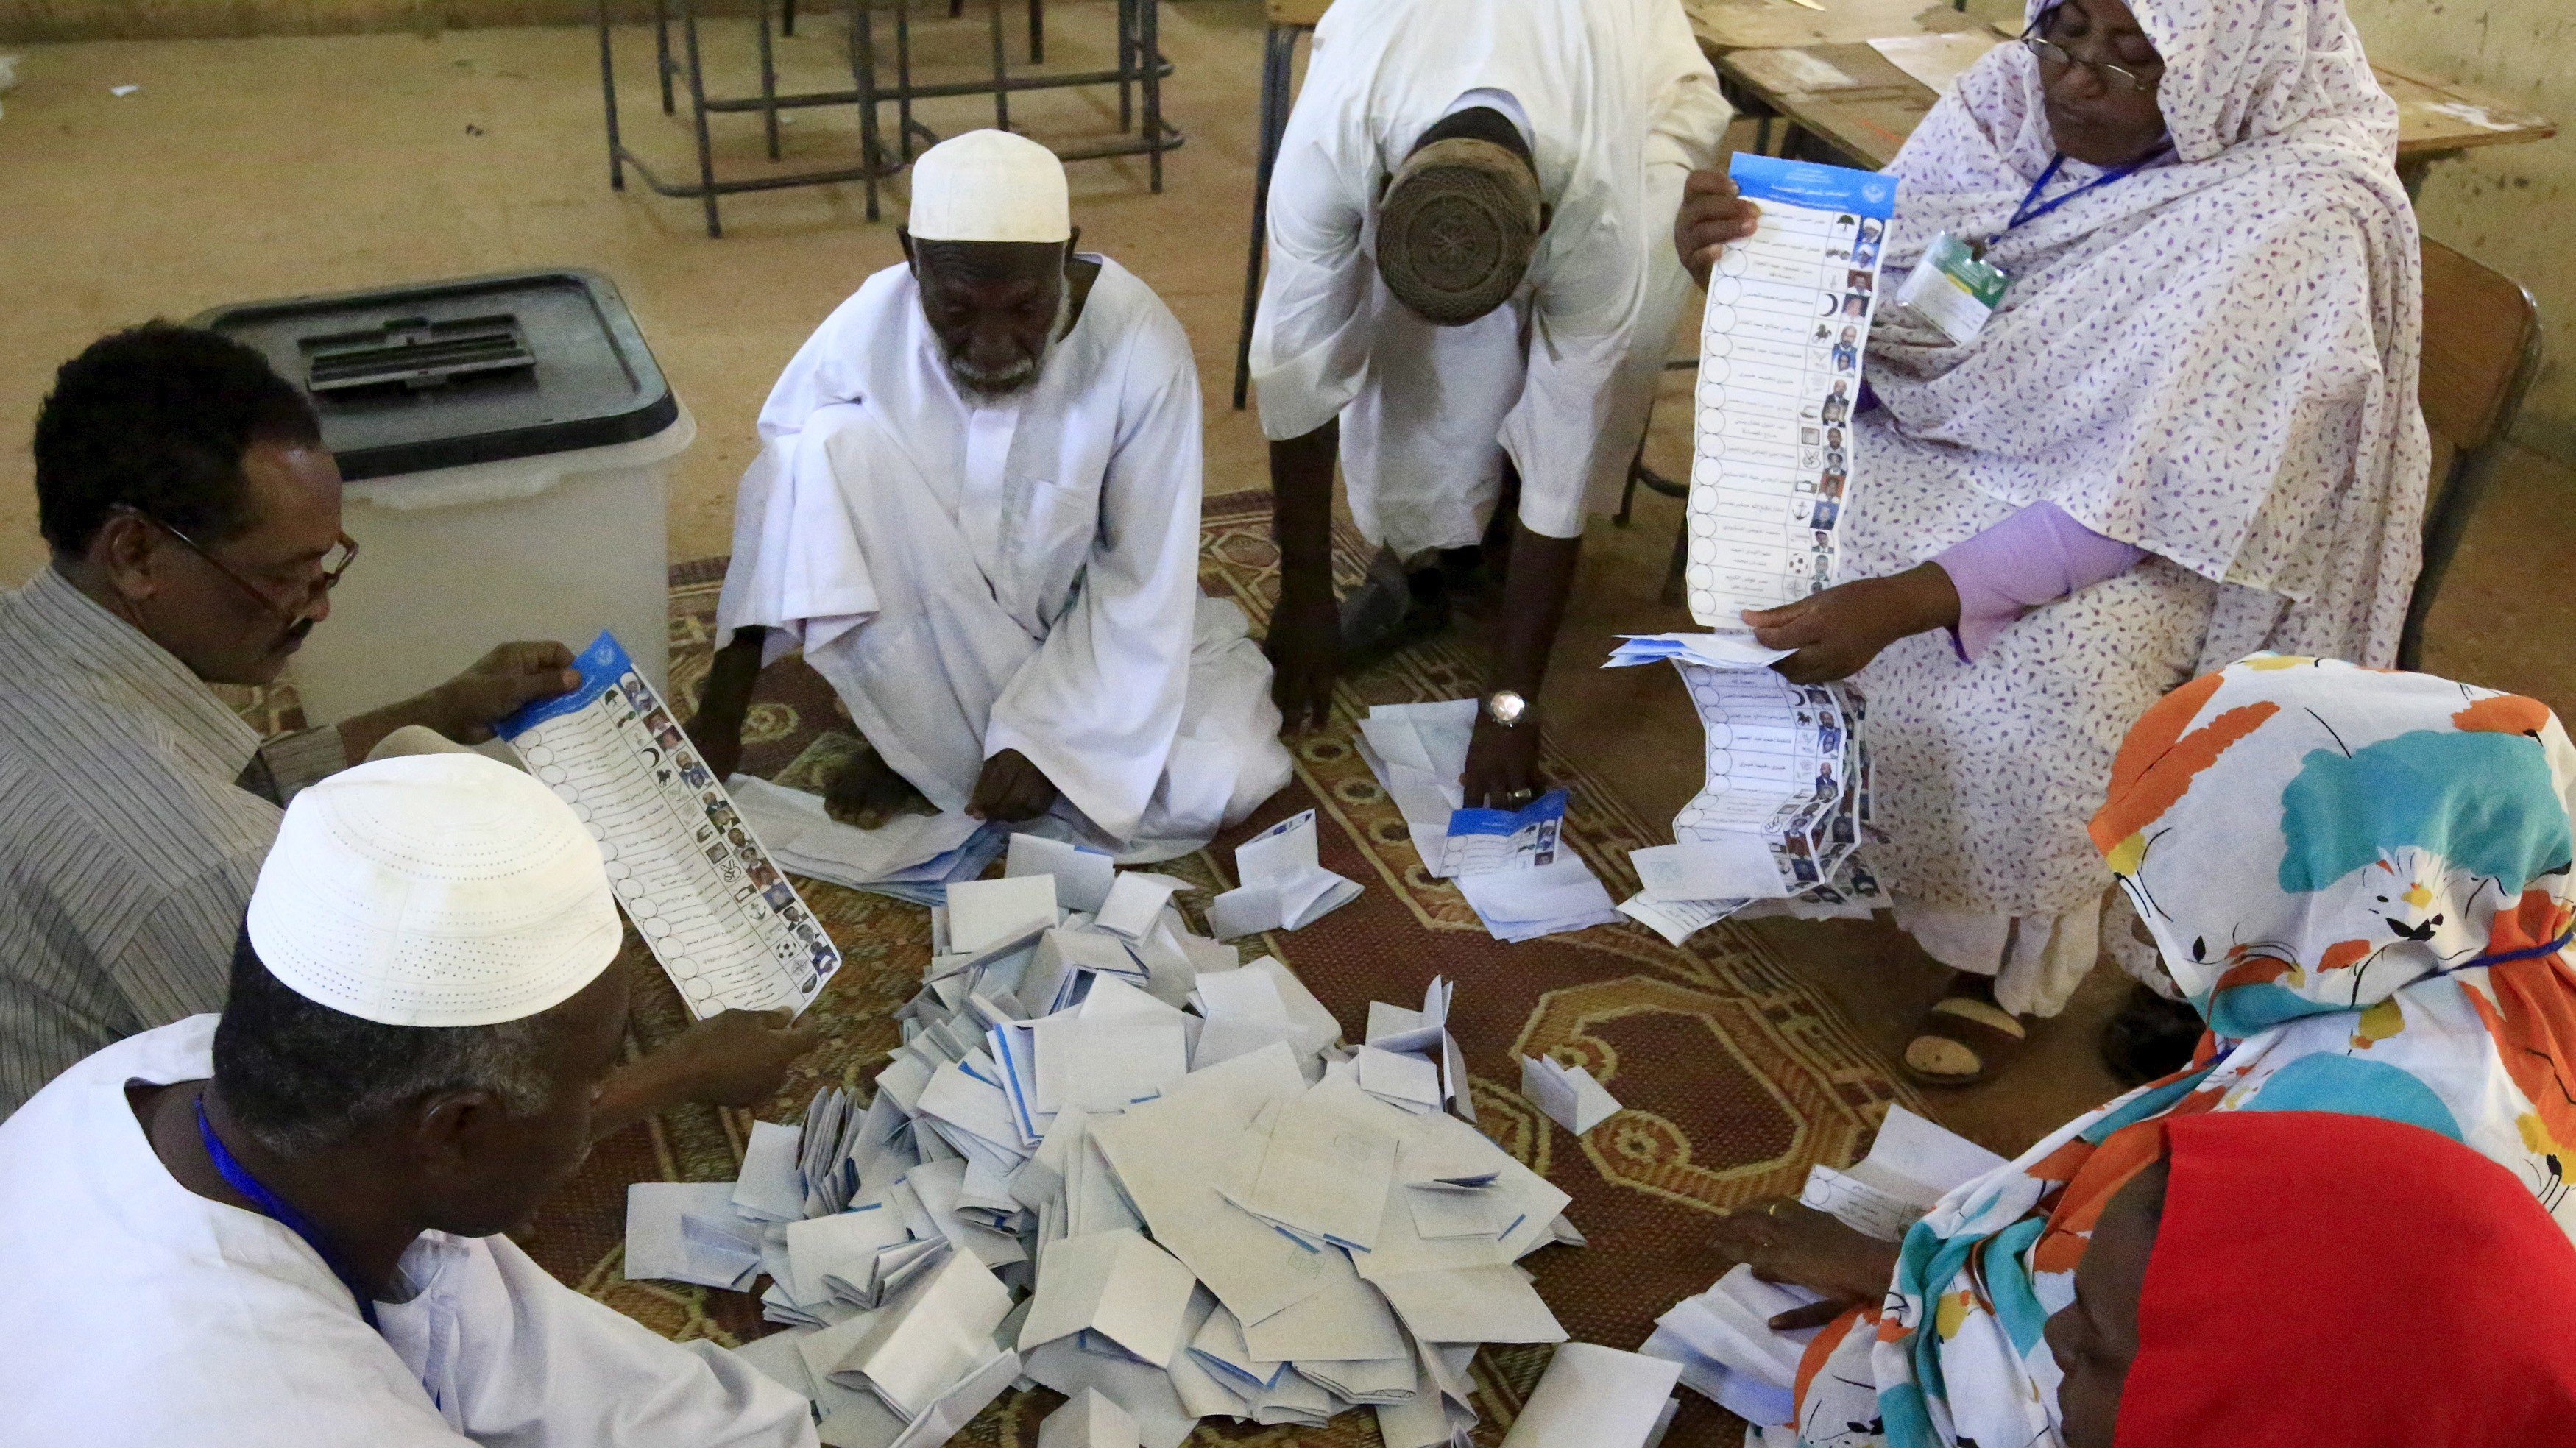 Stage Set for an Escalation of Violence Following 95 Percent Victory in Sudan Elections